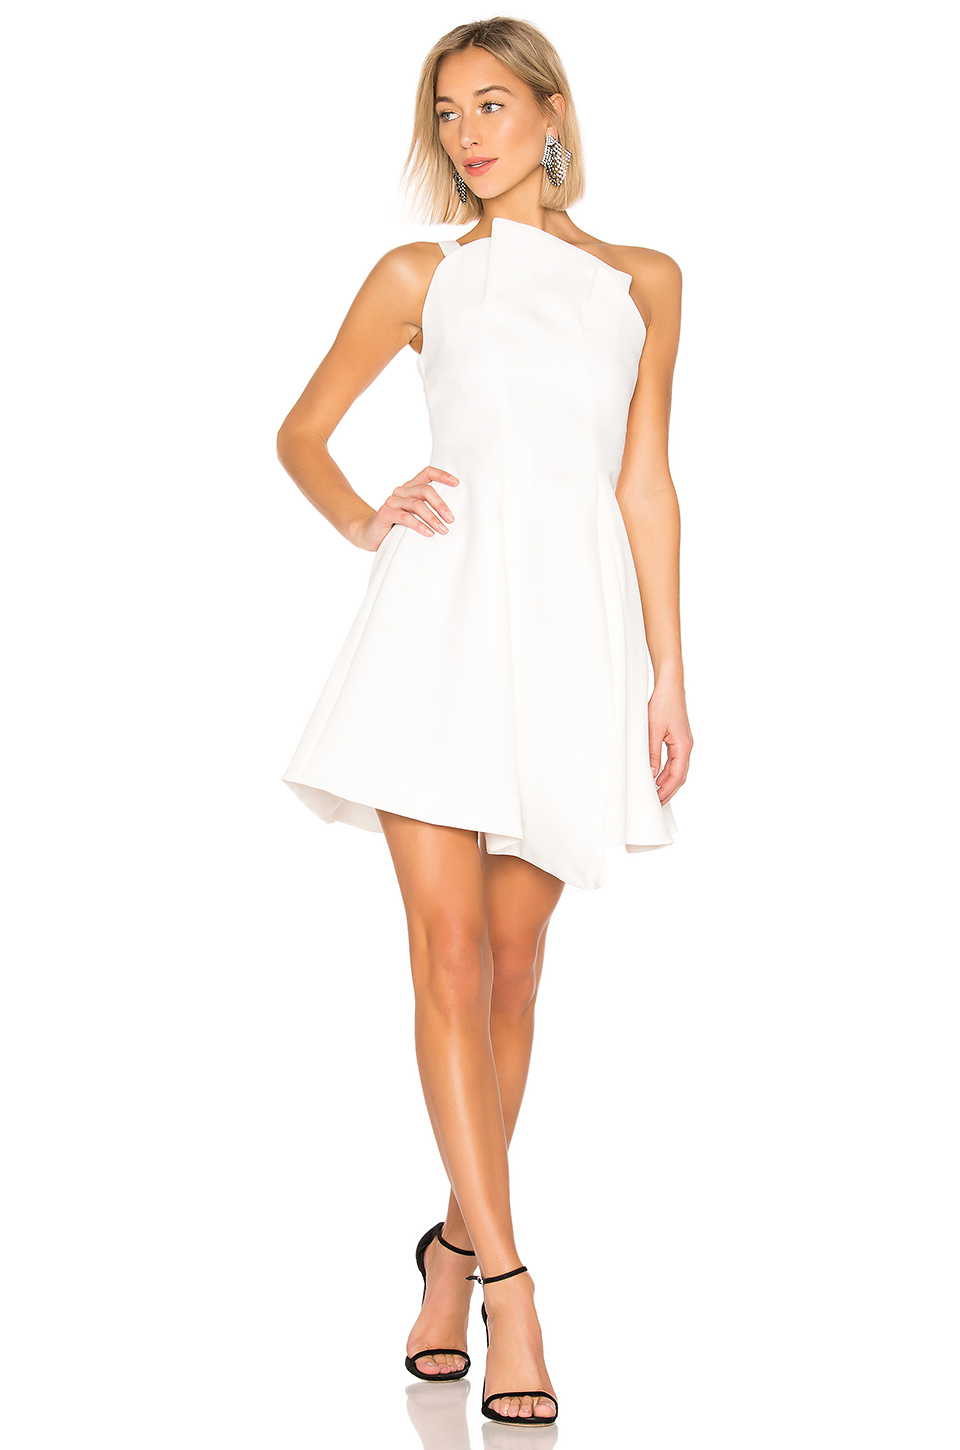 7b12c9cb727 Where to Find a White Rehearsal Dinner Dress in Winter